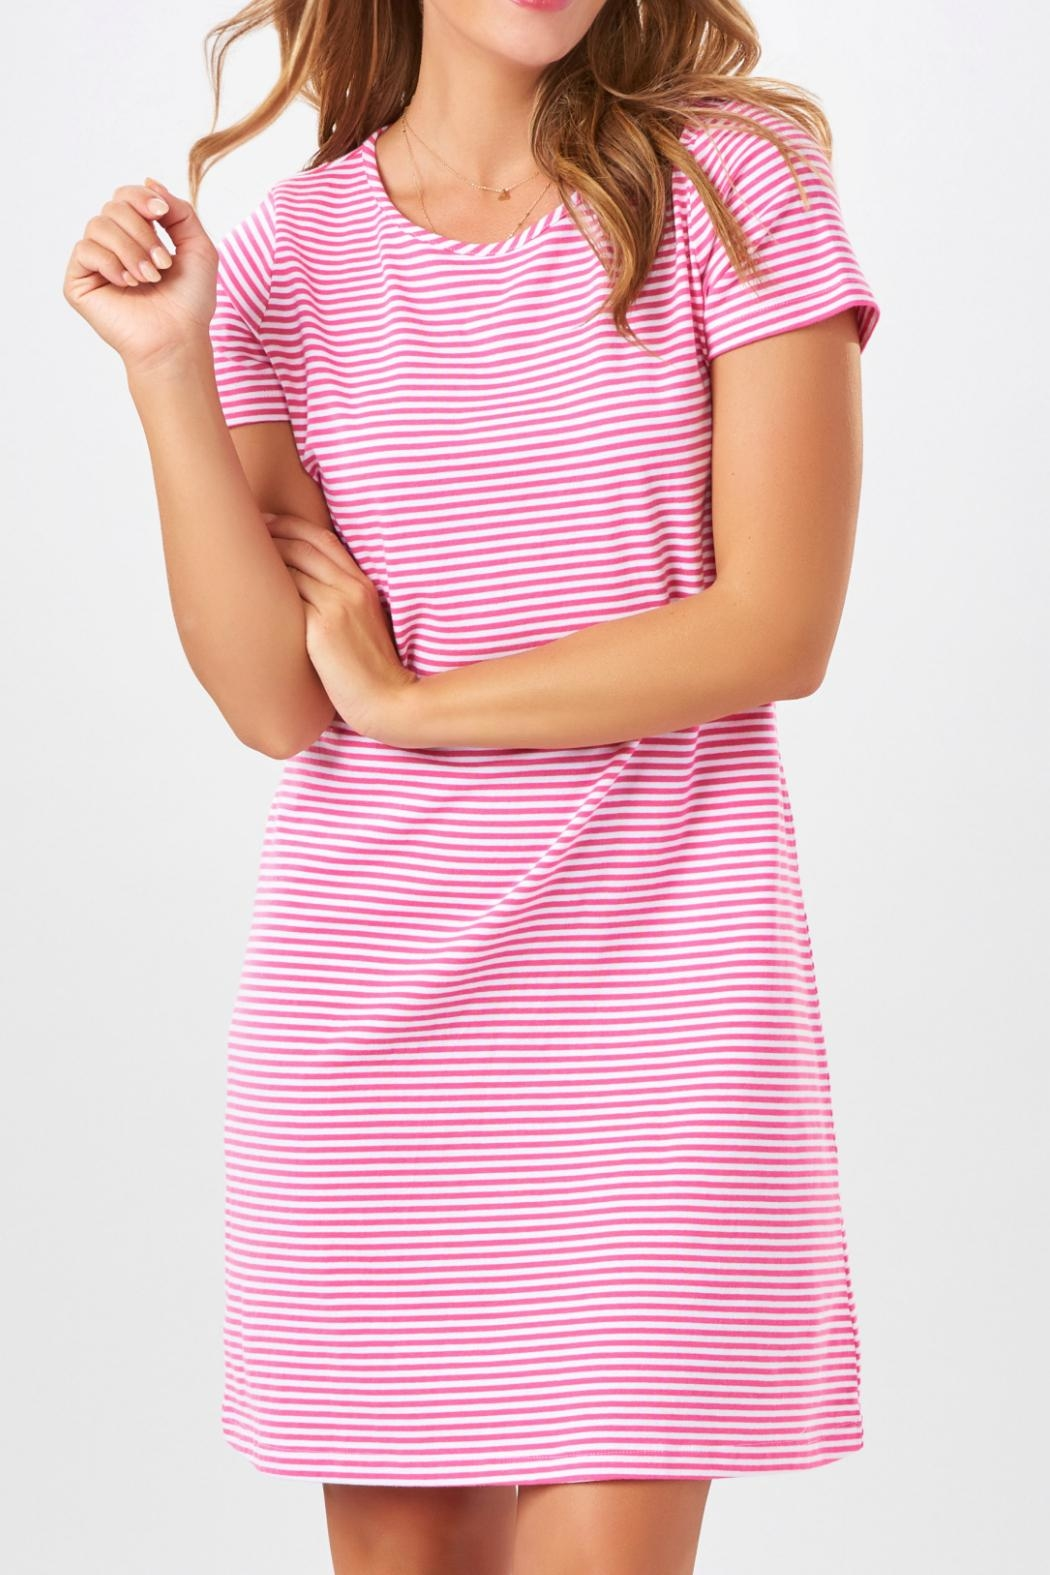 Charlie Paige Striped Knit Dress - Front Cropped Image